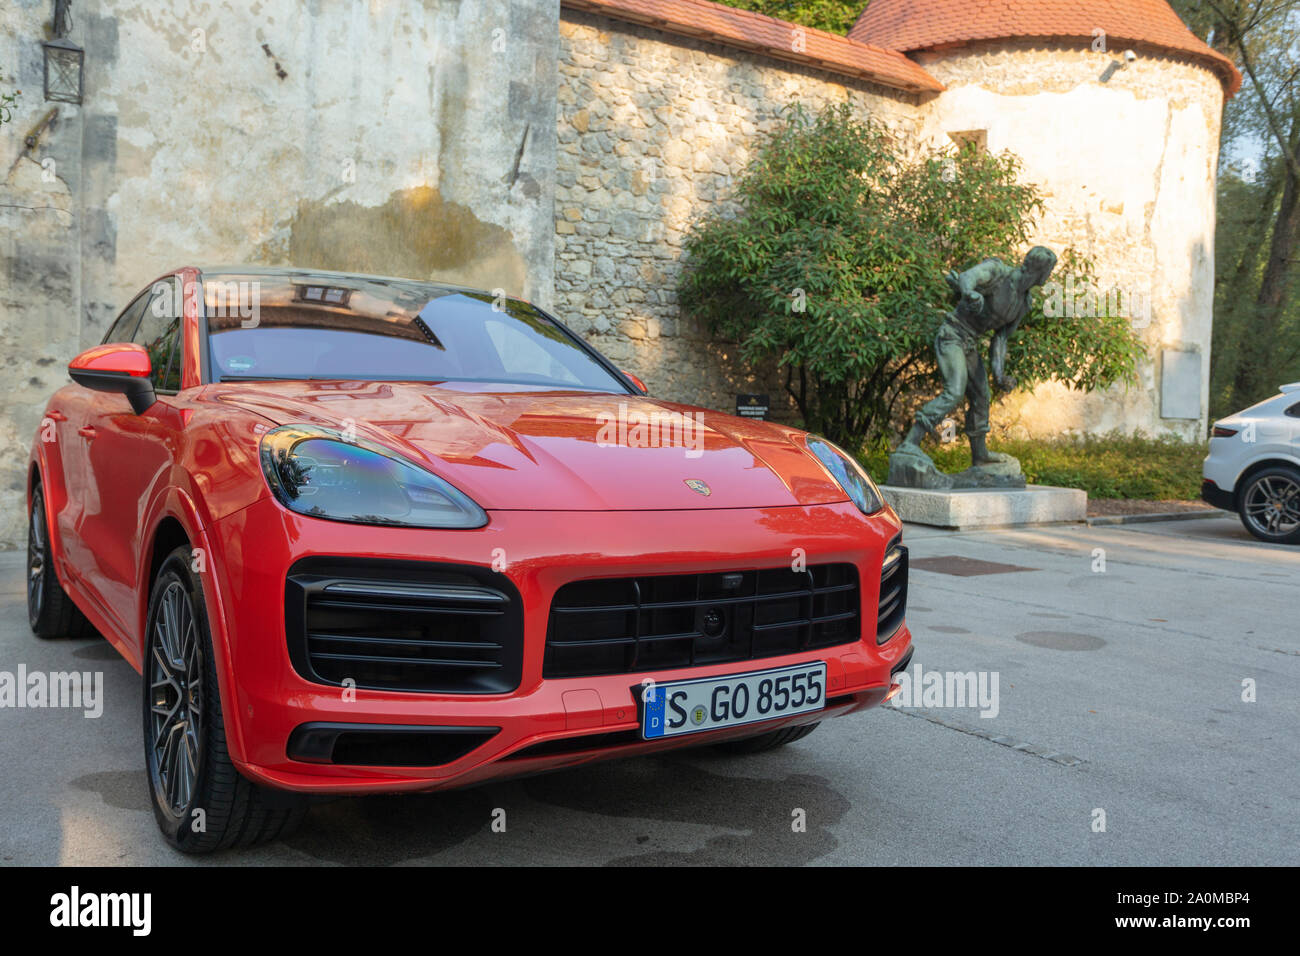 Slovenia Ljubljana 31 August 2019 Red Porsche Cayenne Coupe Turbo S From Stuttgart During Test Drive In Old Castle Stock Photo Alamy